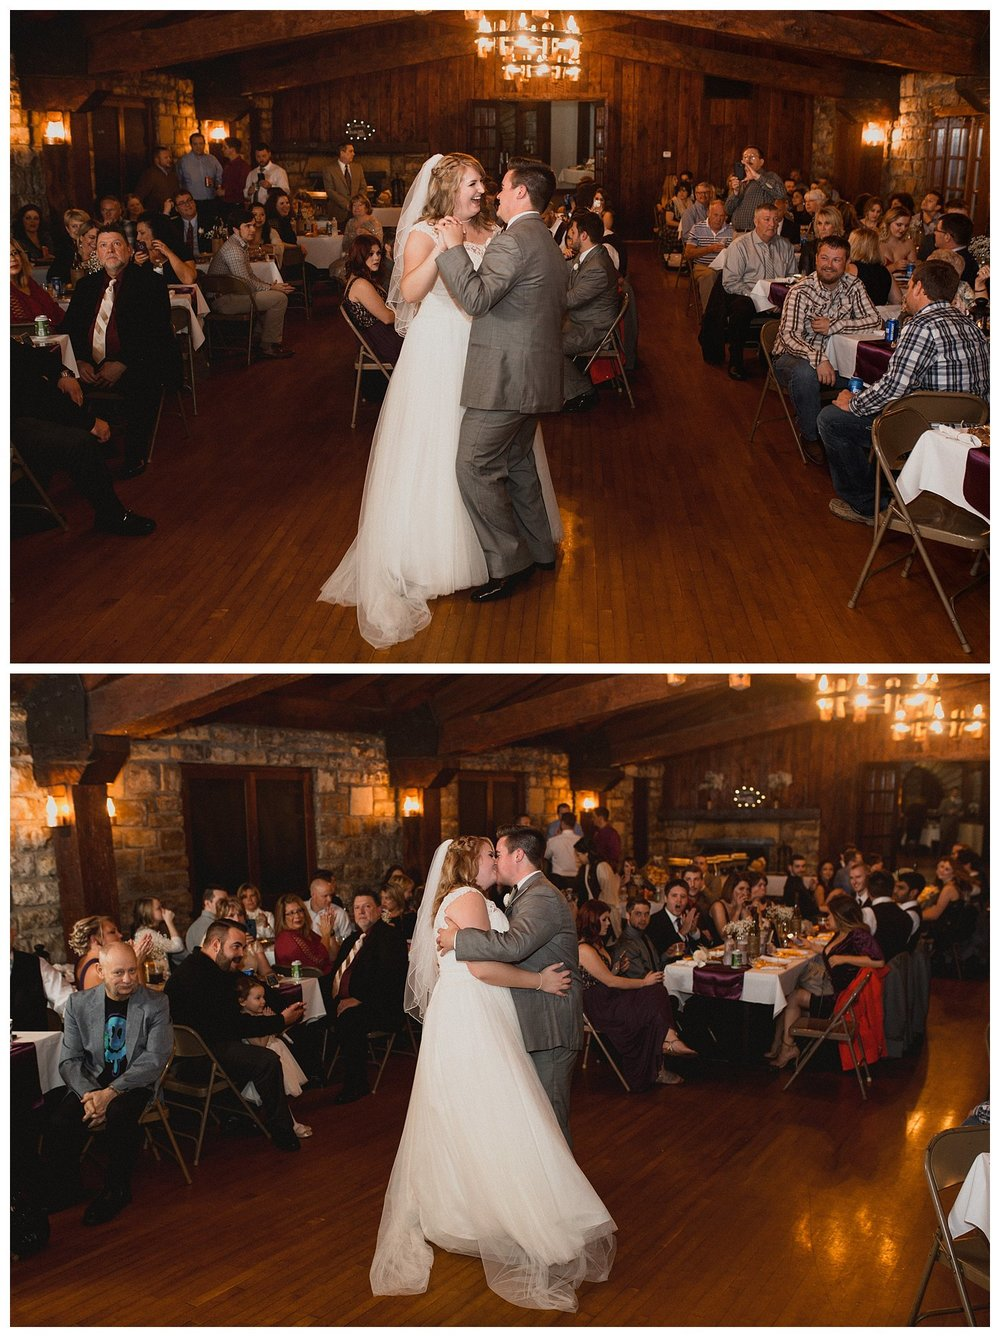 Kelsey_Diane_Photography_Loose_Mansion_Wedding_Photography_Kansas_City_Victor_Lyndsay_0384.jpg